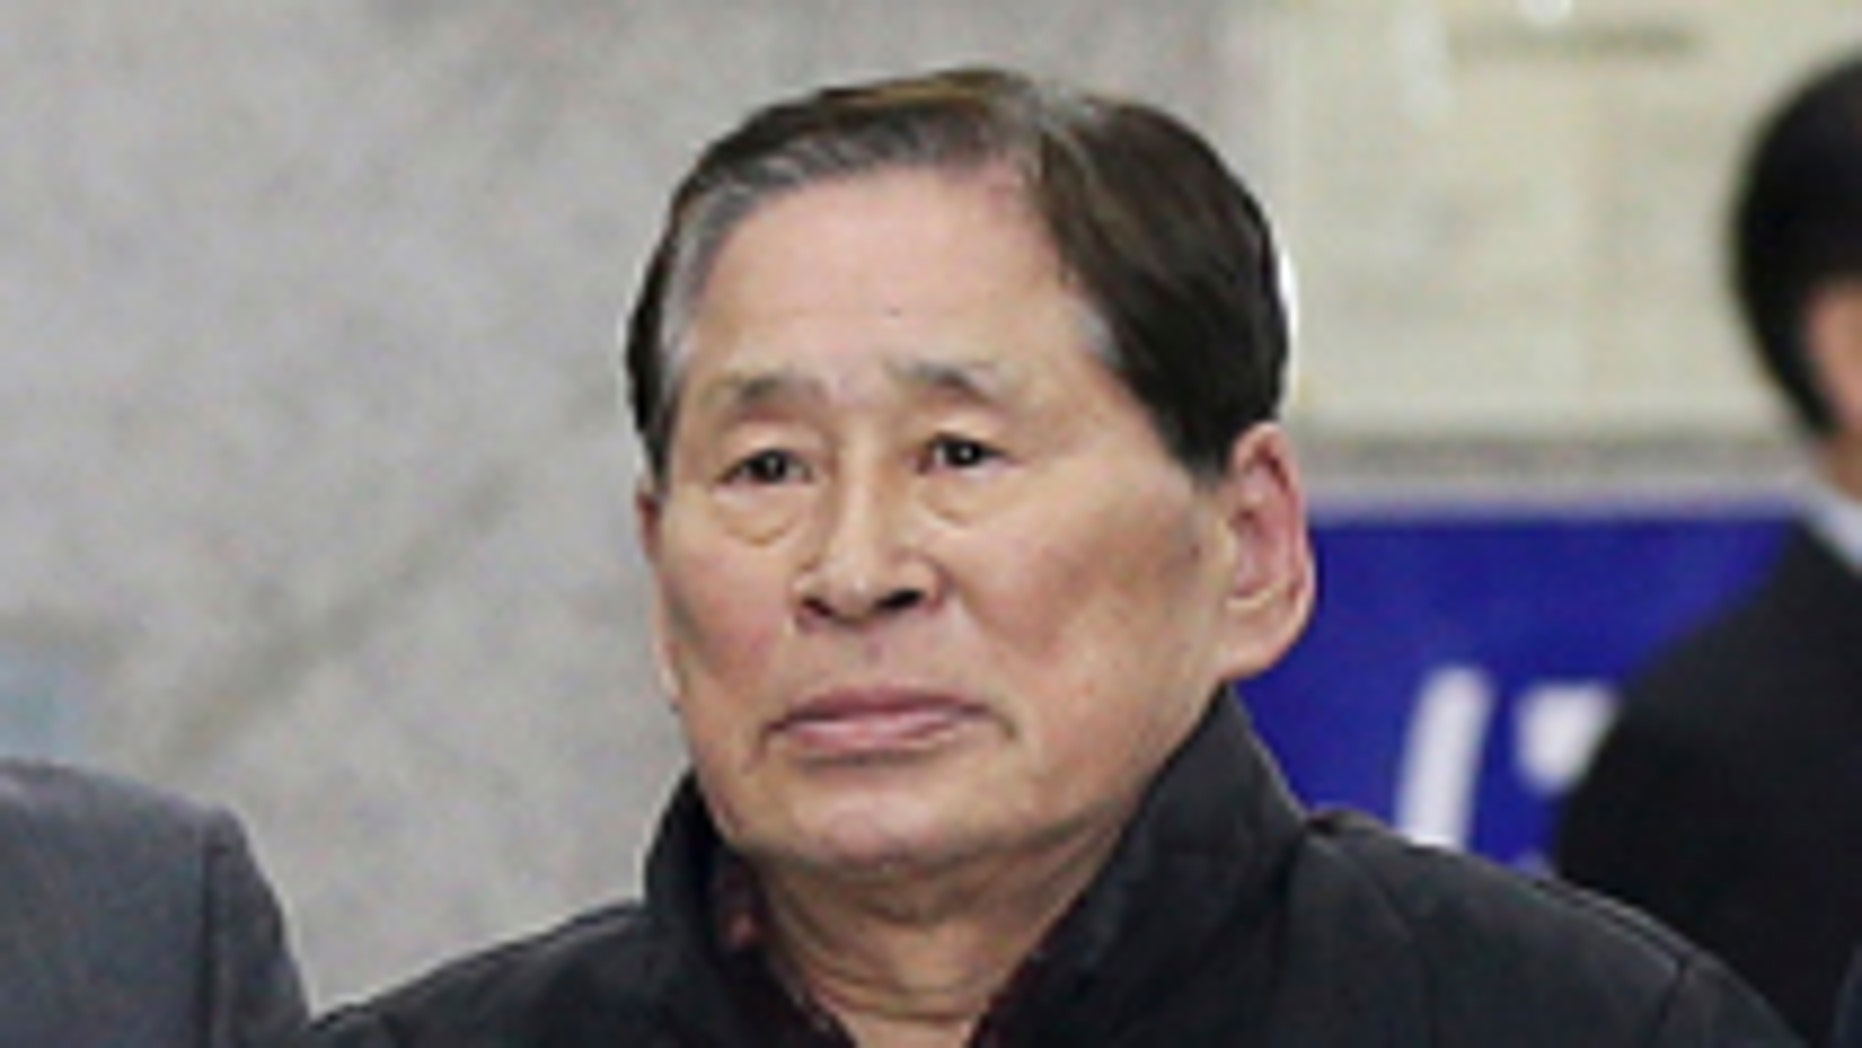 April 17, 2014: Kim Han-sik, president of Chonghaejin, is escorted by helpers to hold a press conference at Incheon Port International Passenger Terminal in Incheon, South Korea. South Korean prosecutors on Thursday detained Kim, the head of the company that owns the ferry that sank last month, over an allegation of cargo overloading.(AP Photo/Yonhap)  KOREA OUT